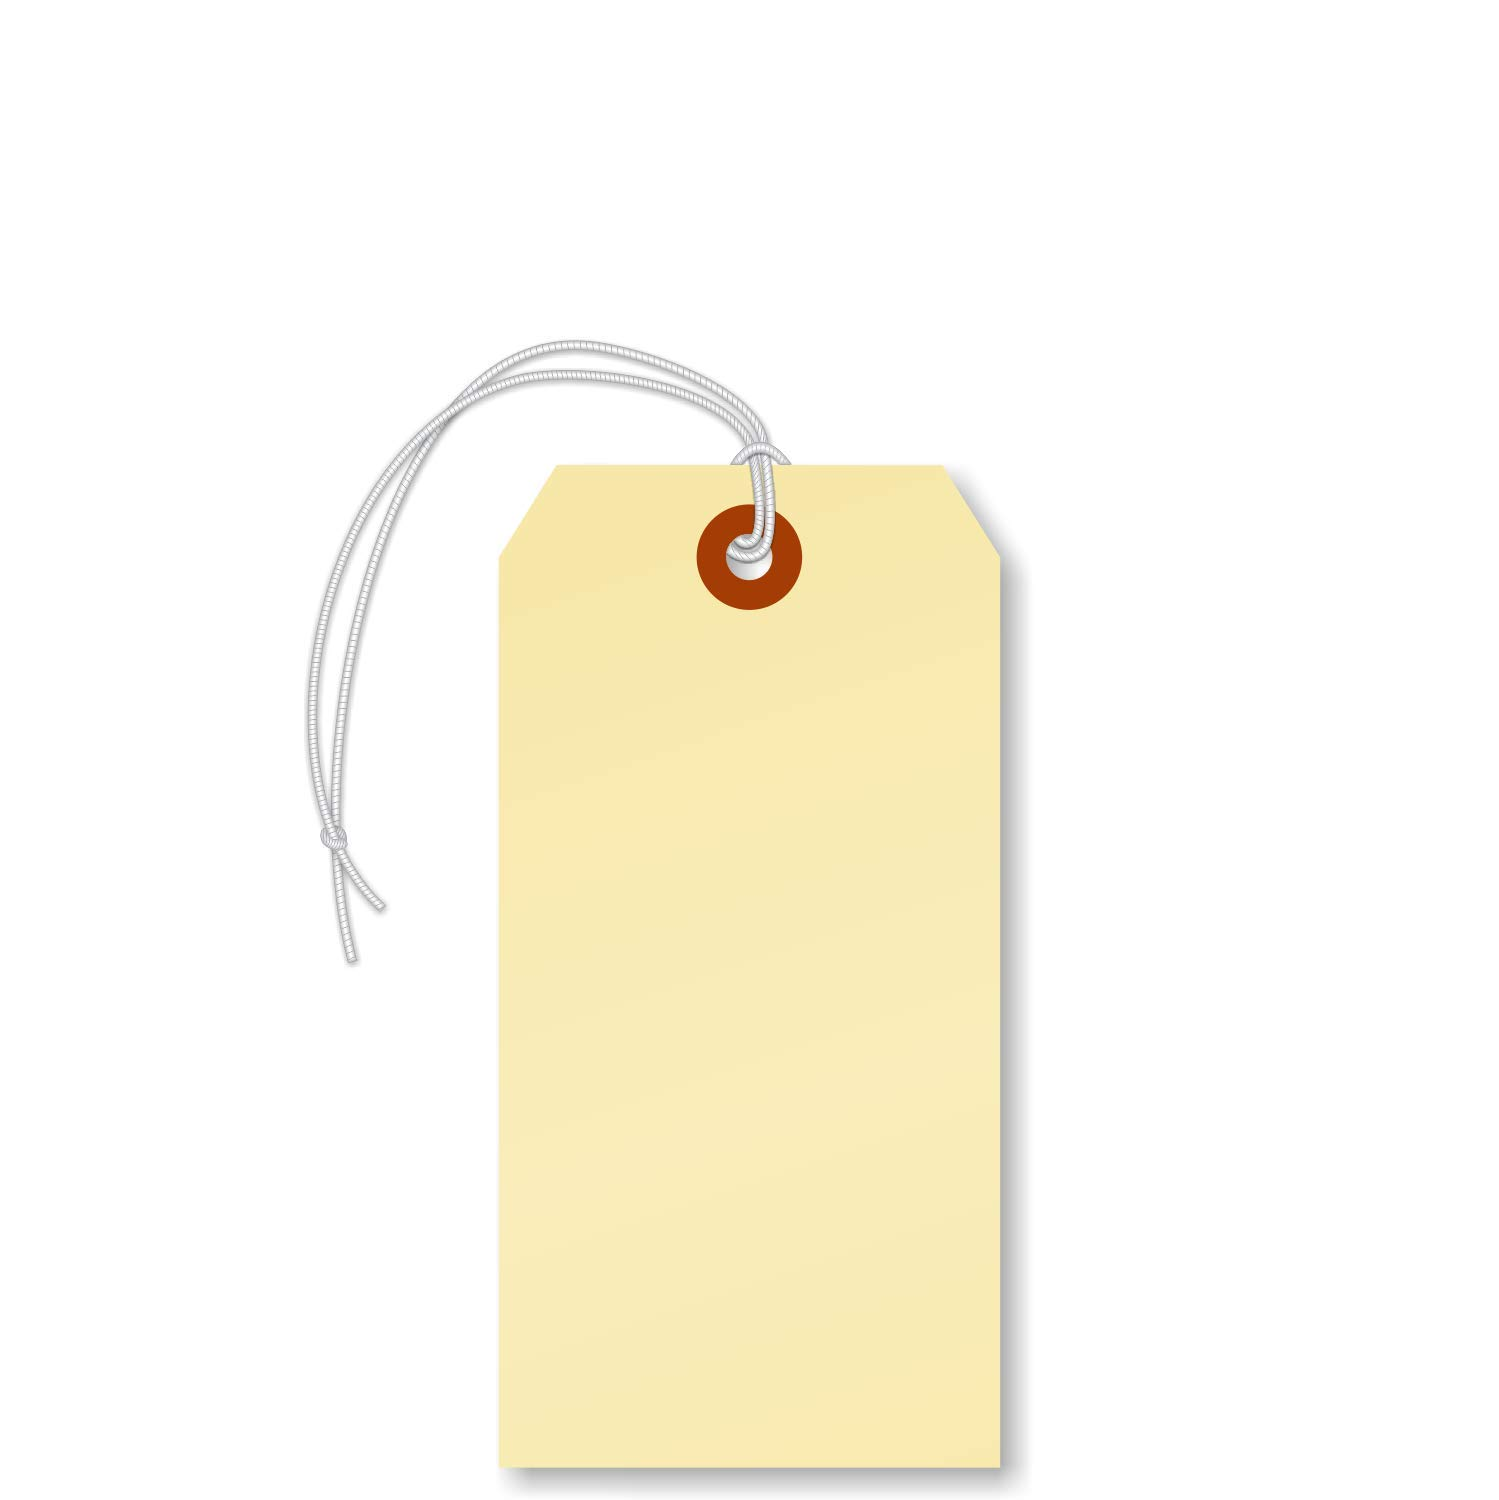 Price reduction SmartSign Blank Manila Shipping Tags Product 13p Size #5 Elastic with